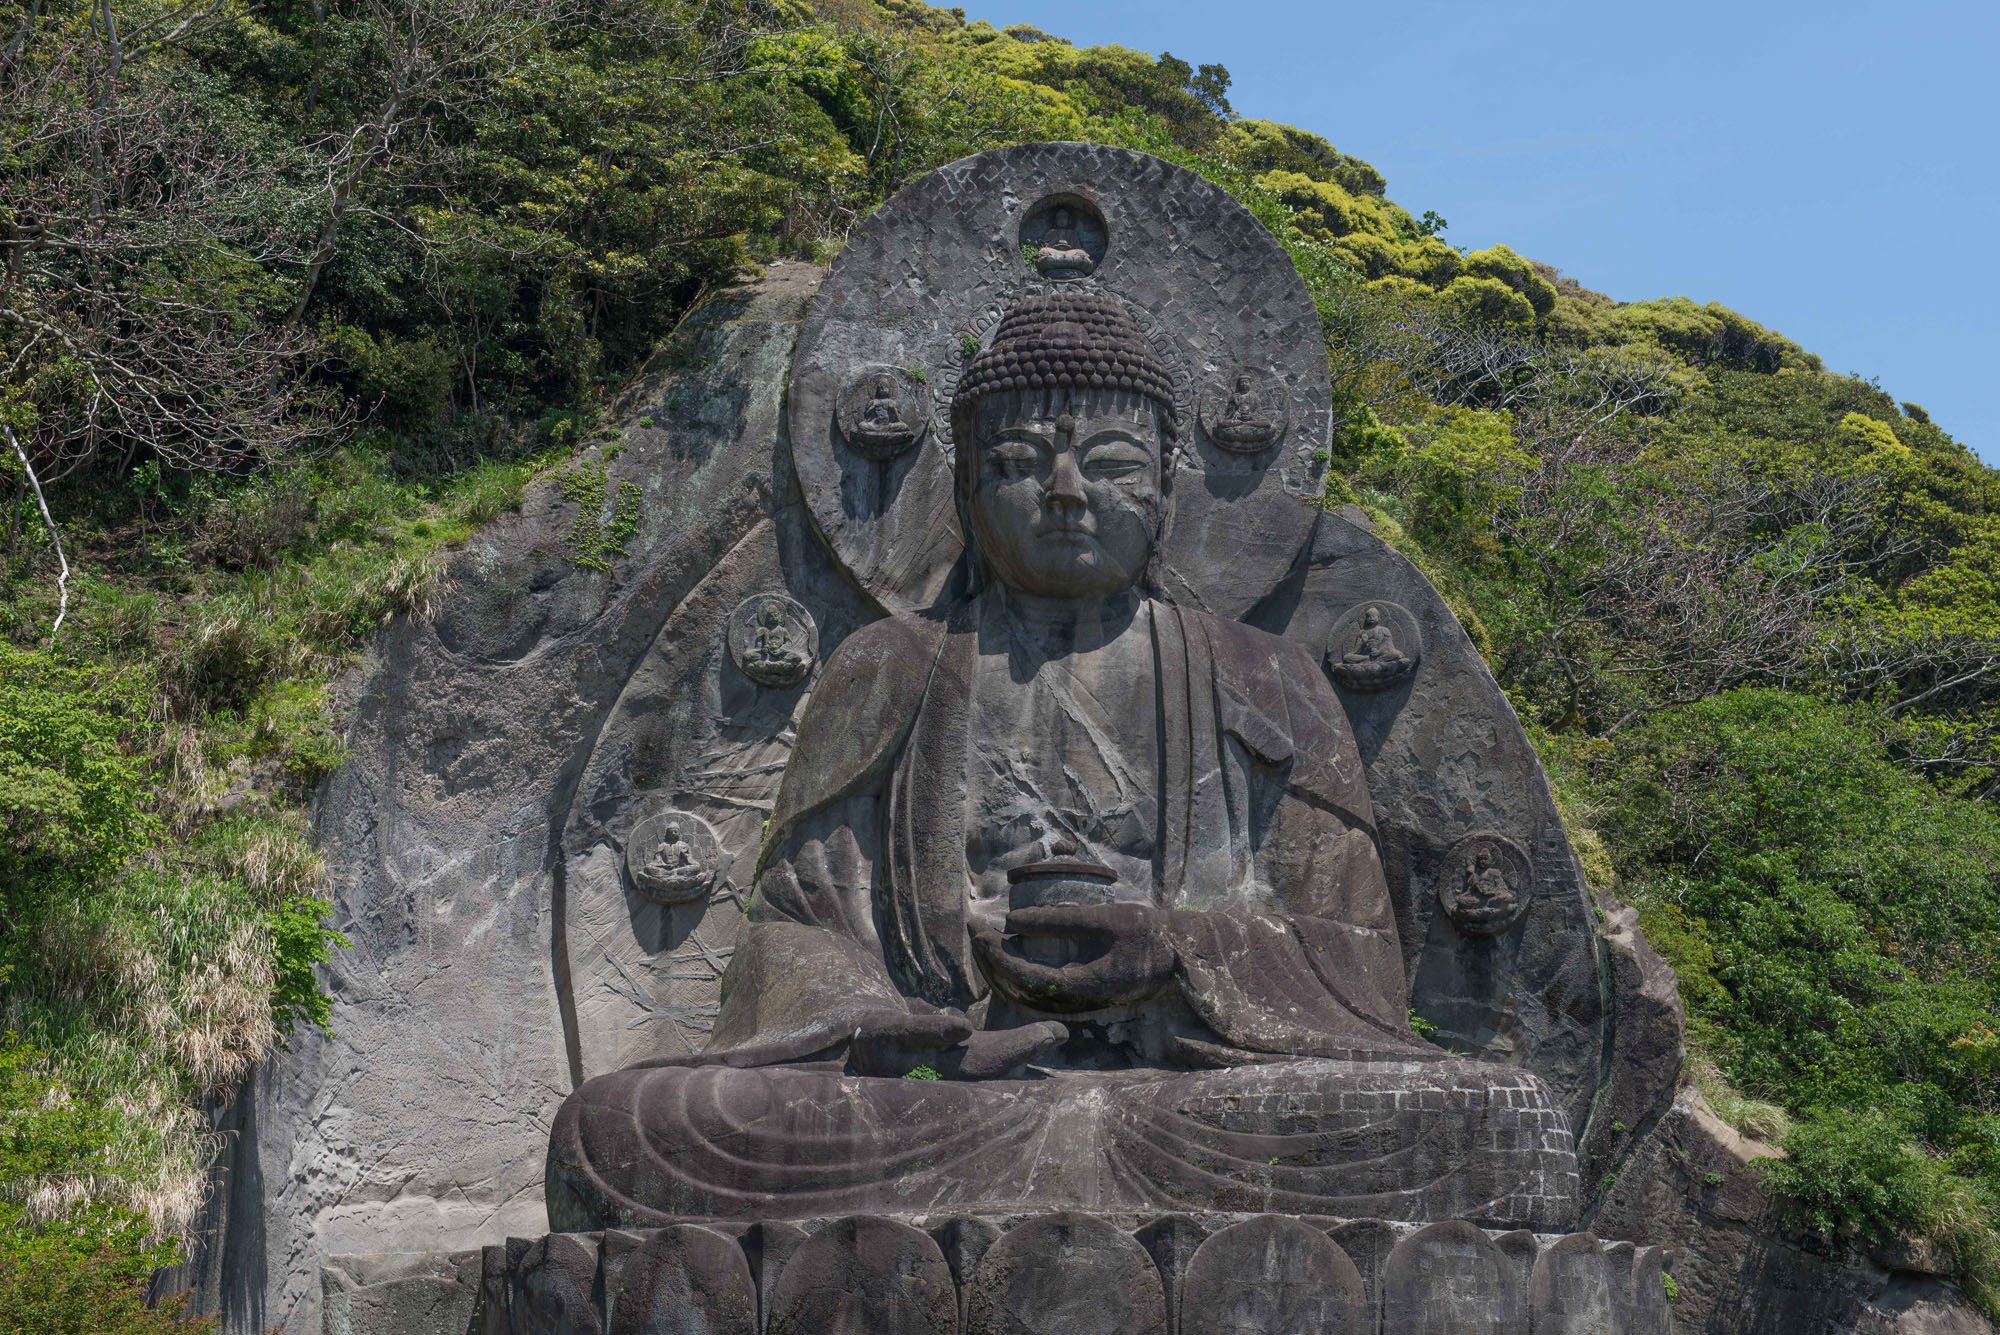 Enlightenment carved in stone: Mount Nokogiri's Great Buddha 